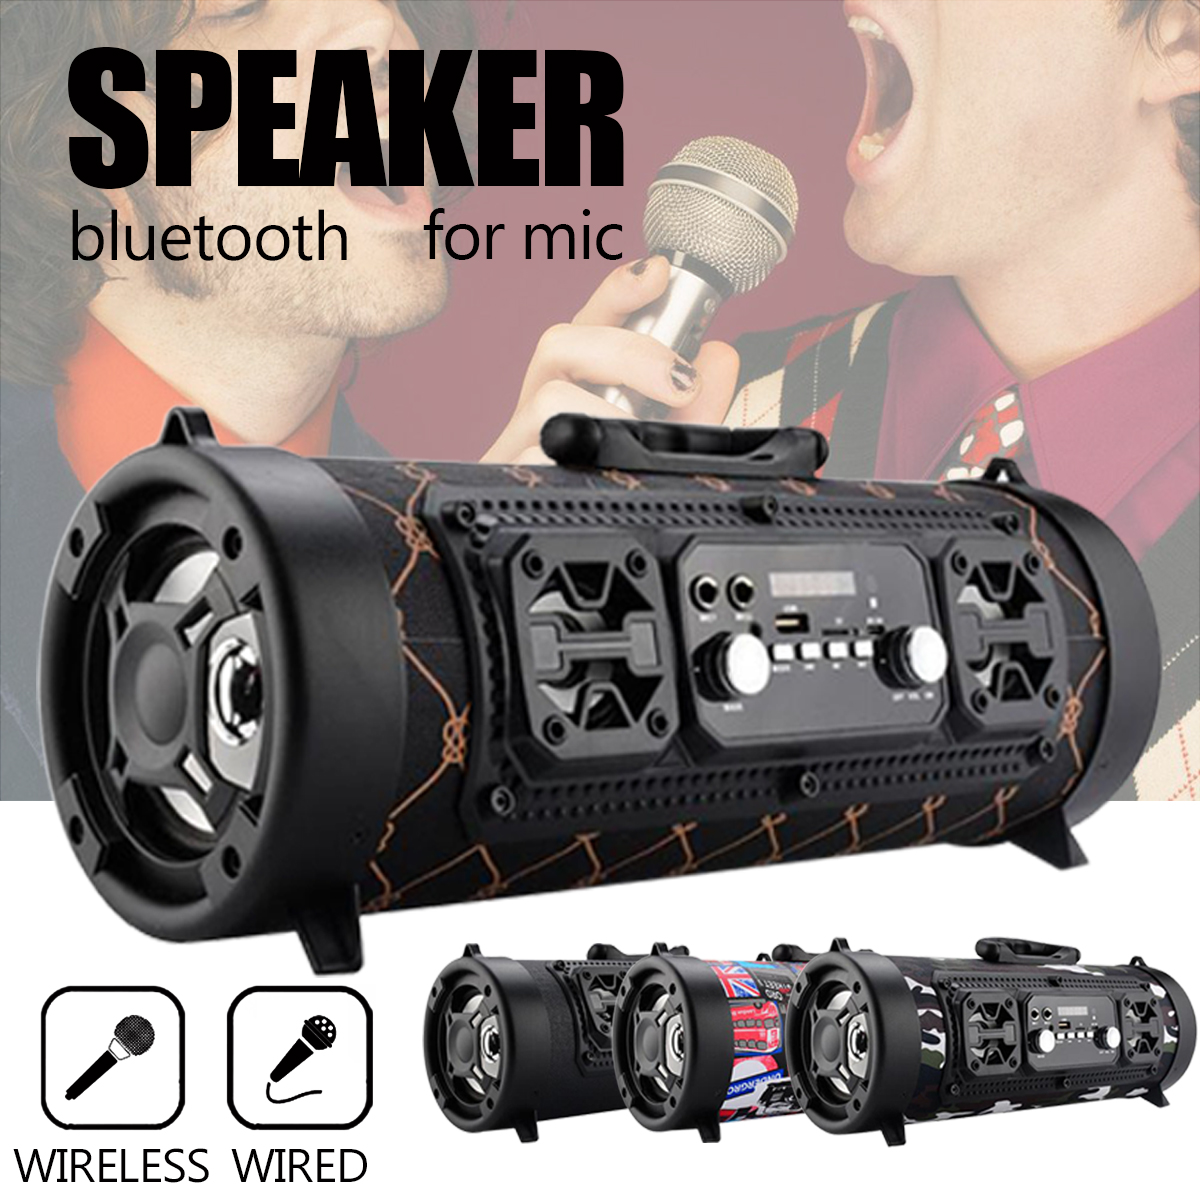 Portable Wireless Bluetooth 4.2 Speaker Hifi Music Surround Stereo USB/ AUX/TF Card Subwoofer Loudspeaker Brass with MIC Outdoor qcy qq100 max mini wireless bluetooth 3 0 speaker surround stereo hifi subwoofer tf card led flashlight 2600mah